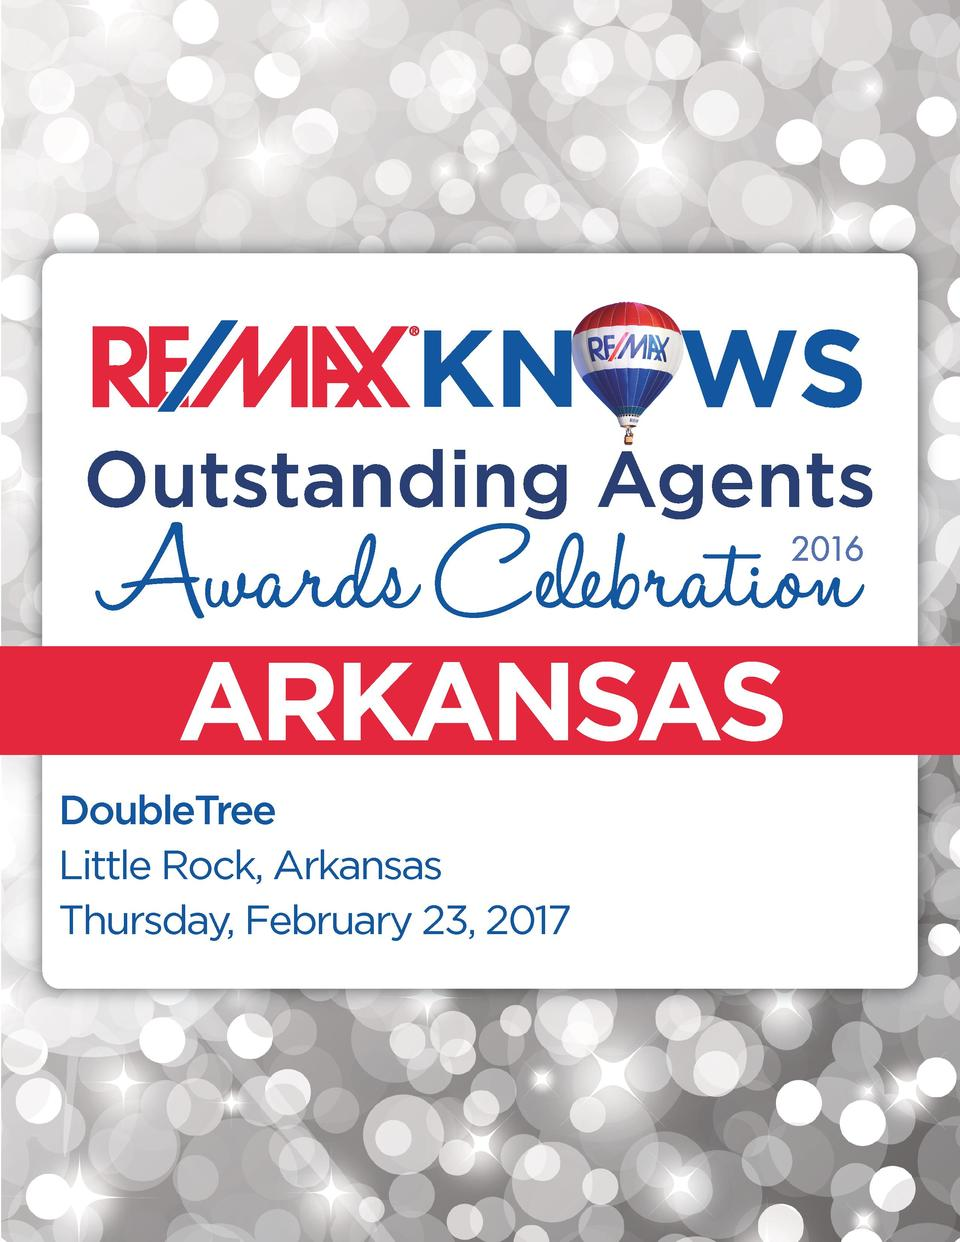 ARKANSAS DoubleTree Little Rock, Arkansas Thursday, February 23, 2017